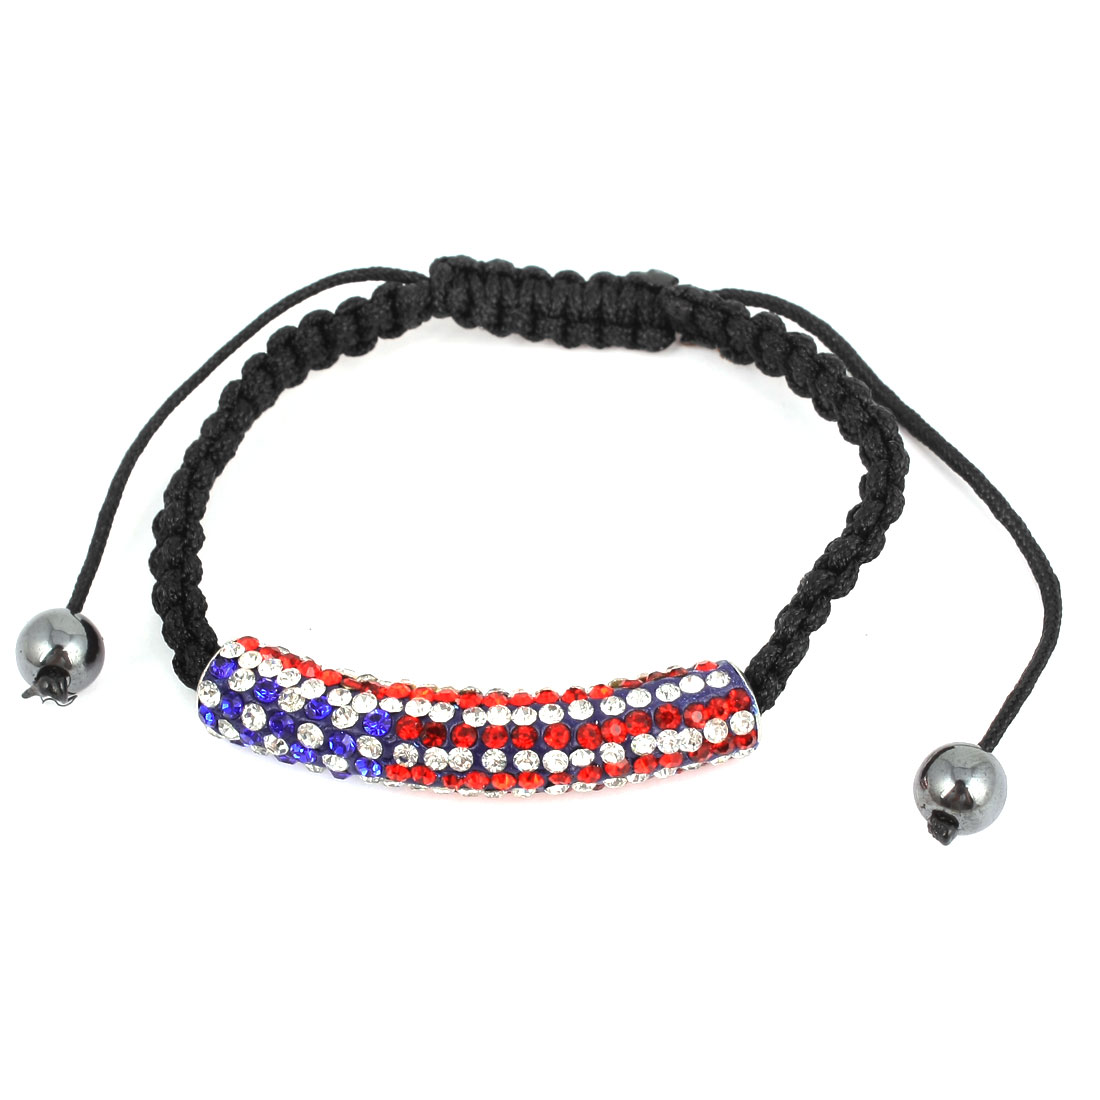 Unisex Wrist Decor Rhinestone Detailing US Flag Braided Bracelet Bangle Black